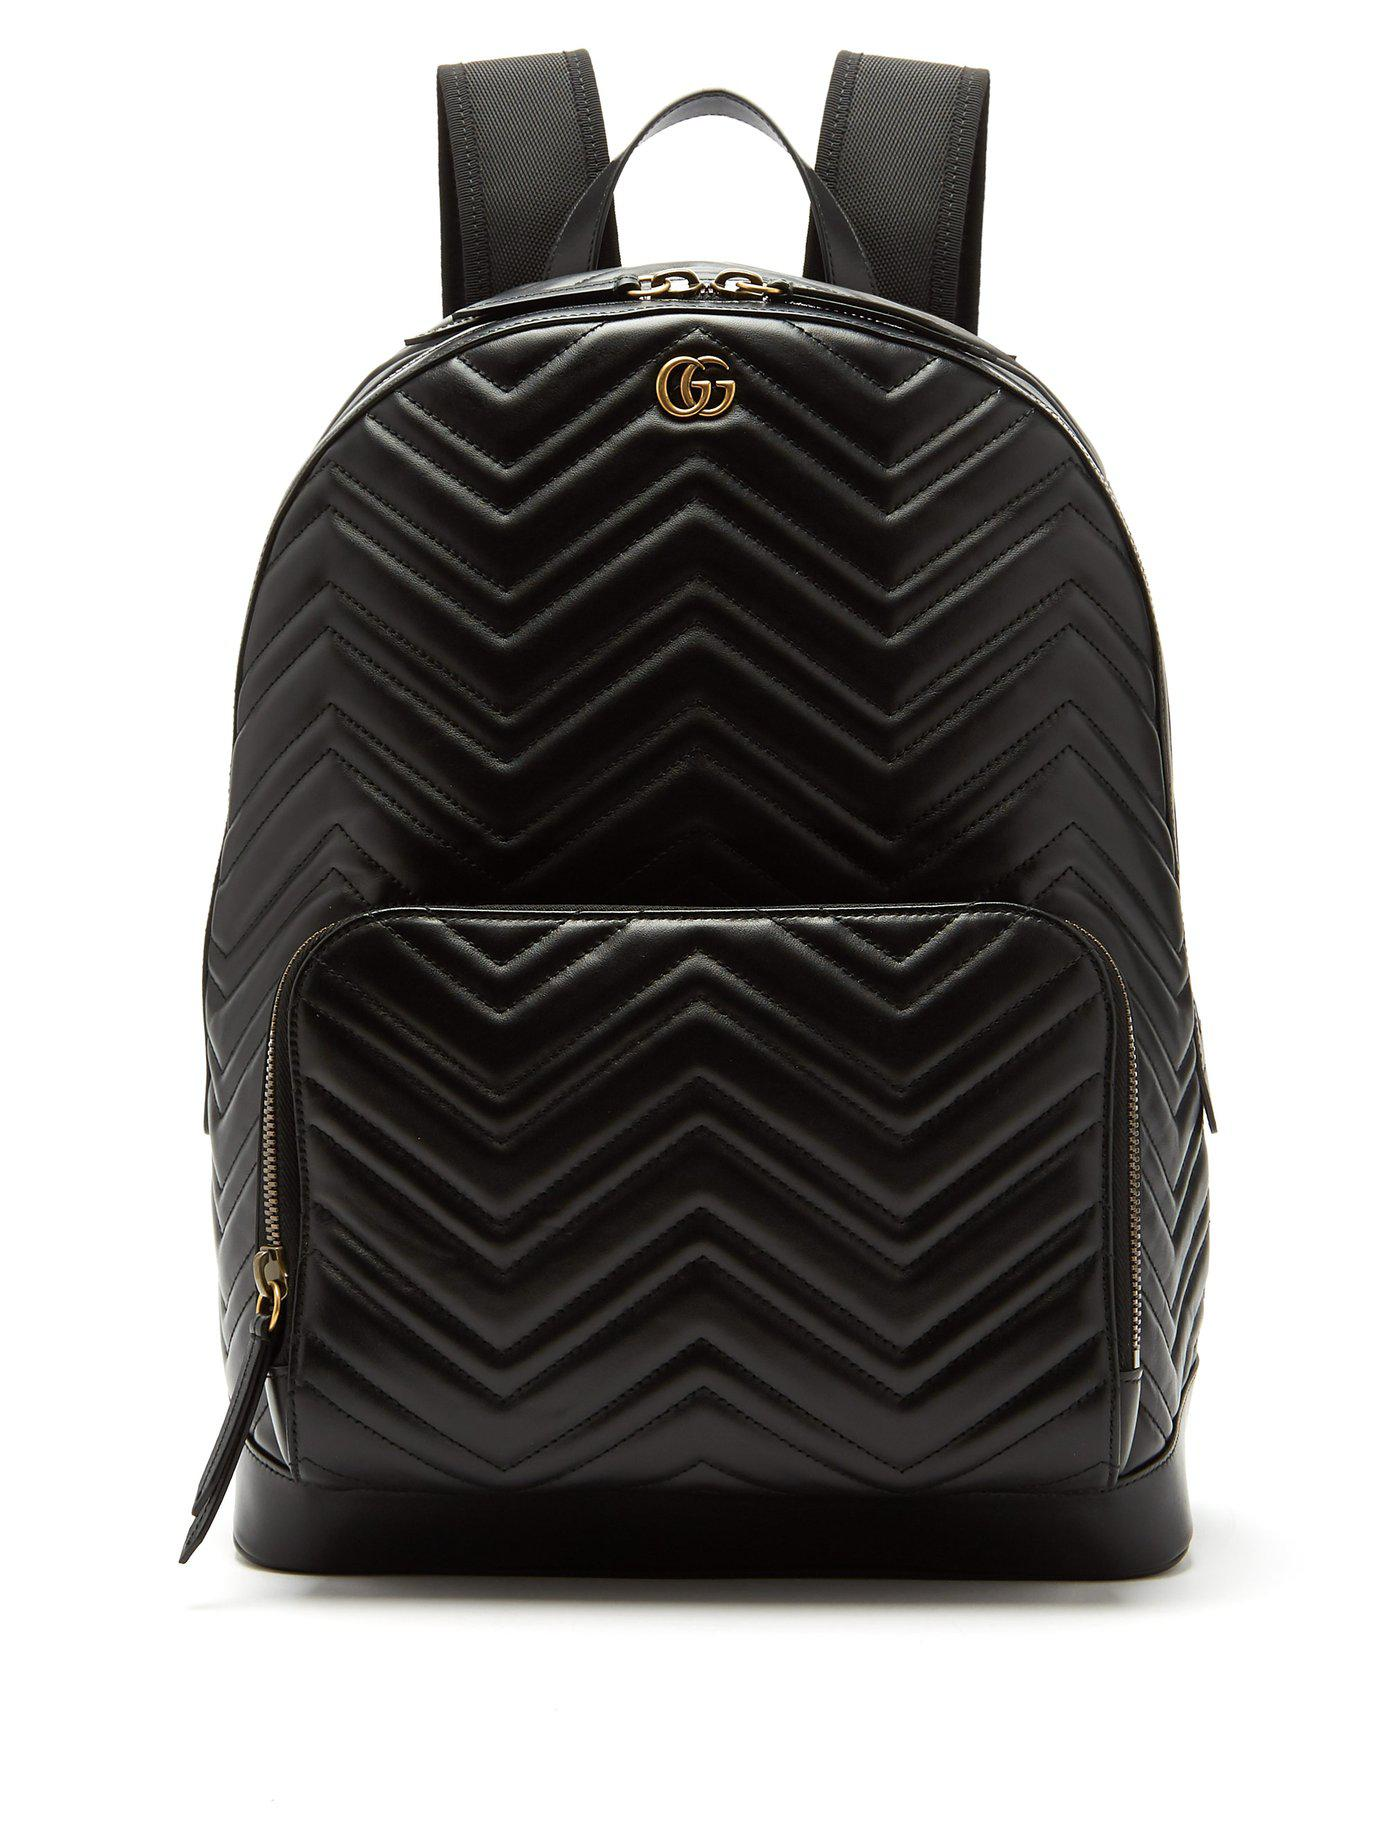 Lyst - Gucci Marmont Leather Backpack in Black for Men 007af9ee8ac43